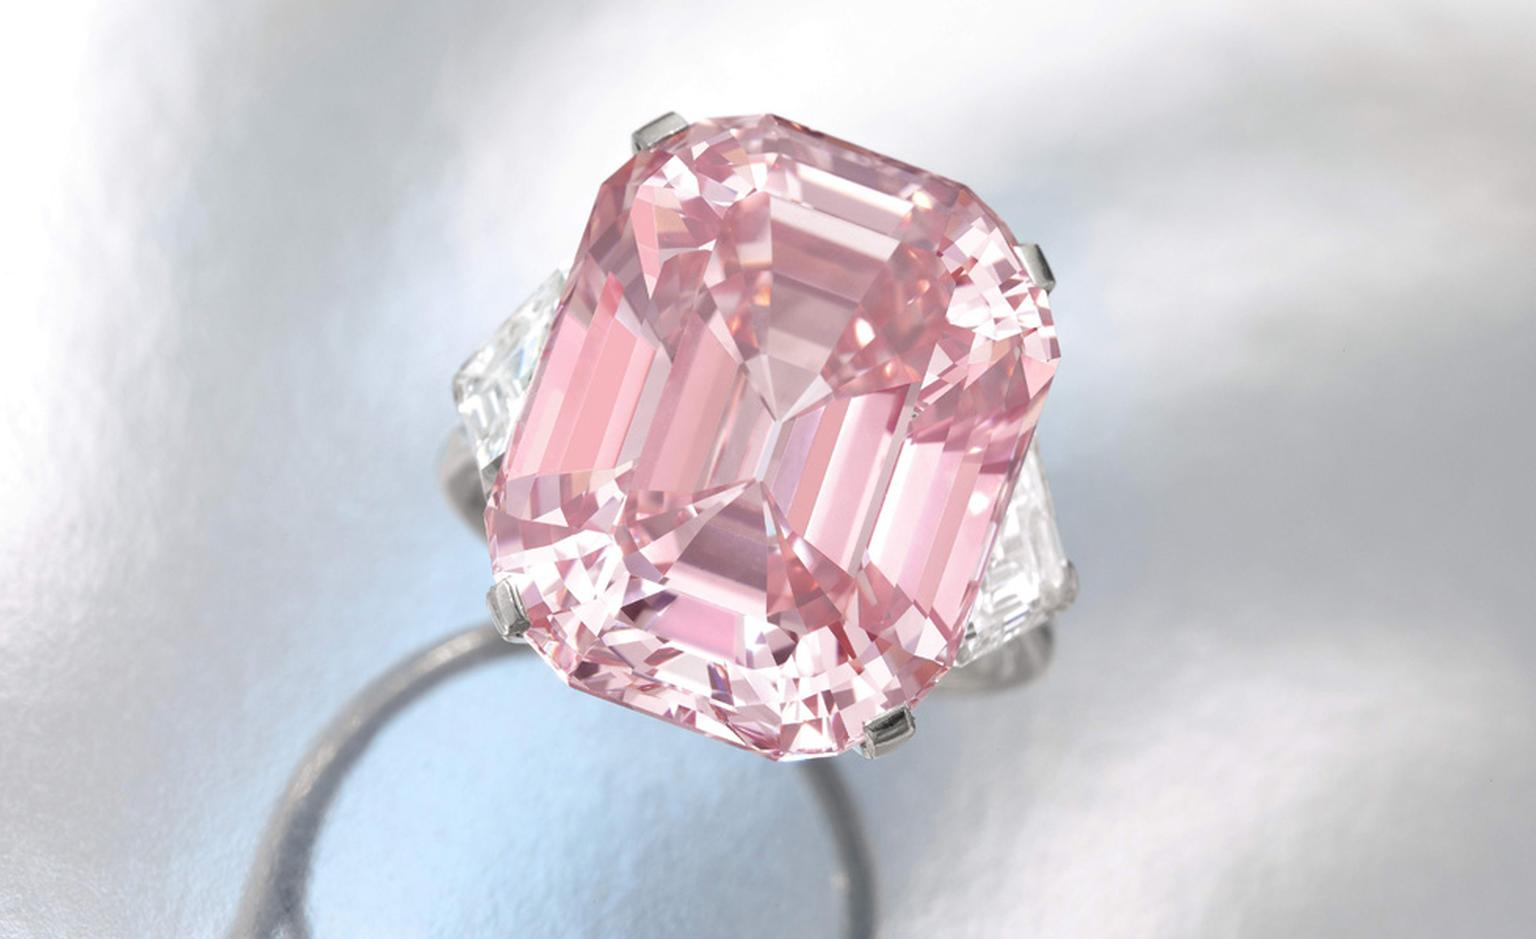 980Magnificent-Pink-Diamond